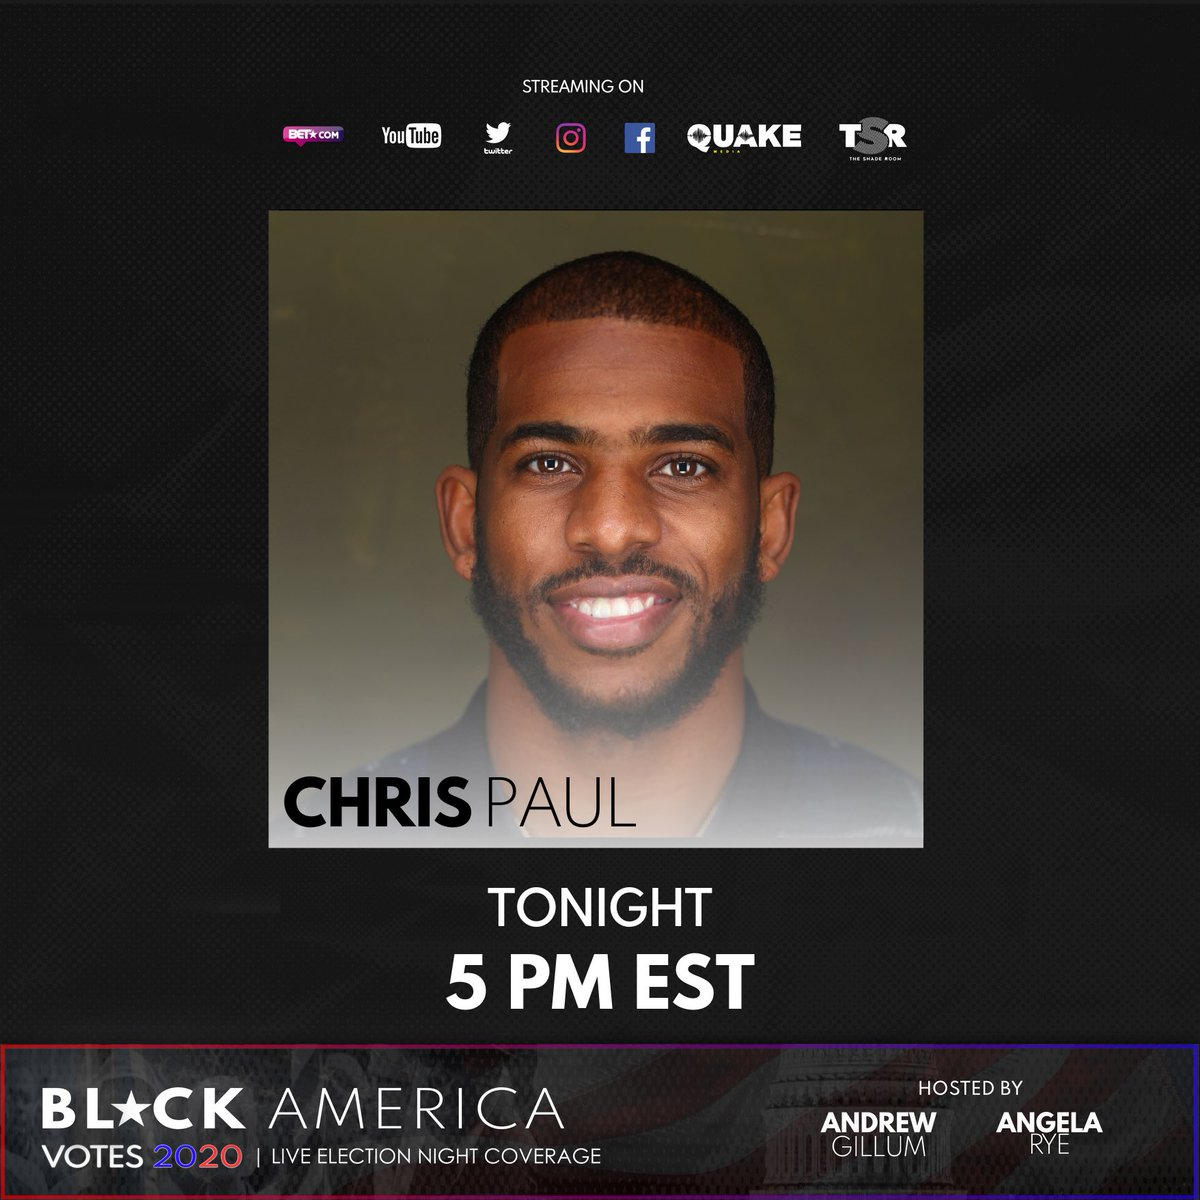 About to jump on with @angela_rye and @AndrewGillum on #BlackAmericaVotes2020, the largest Black-centric election night coverage special in media history. Meet me there!